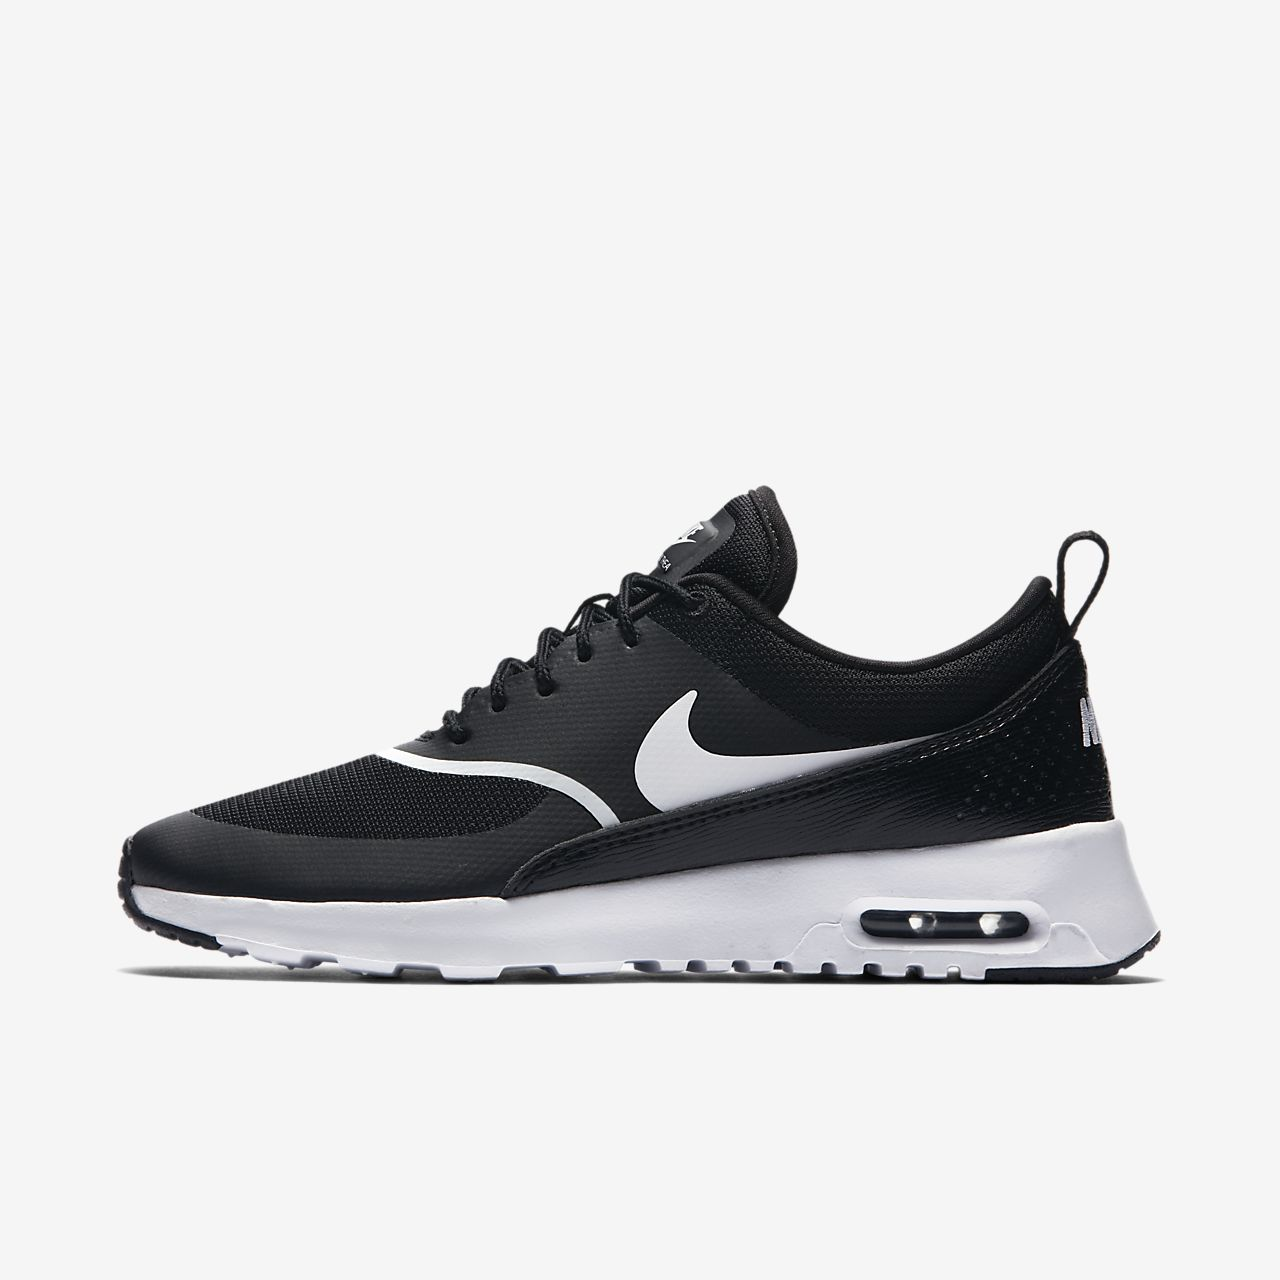 sports shoes 2dae1 f4e80 ... Nike Air Max Thea Womens Shoe